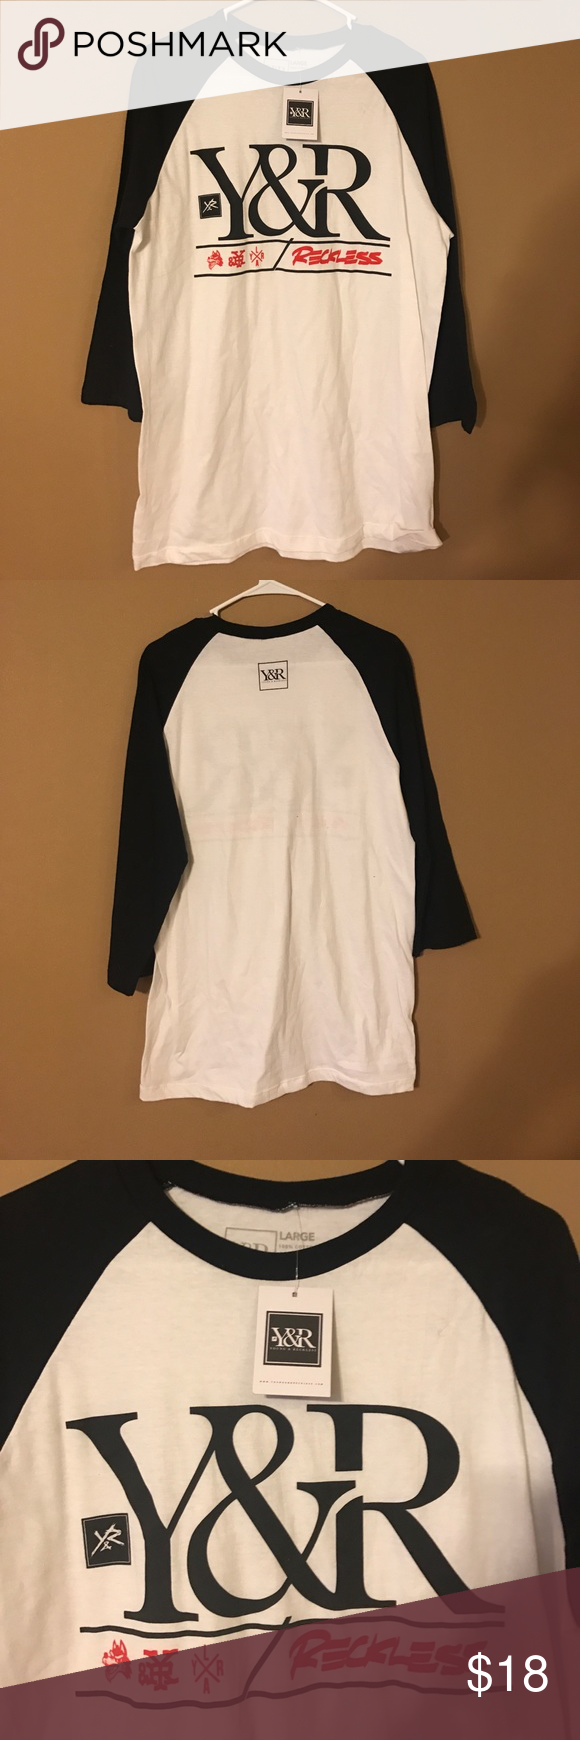 Young & Reckless baseball tee | Reckless shirts, Clothes